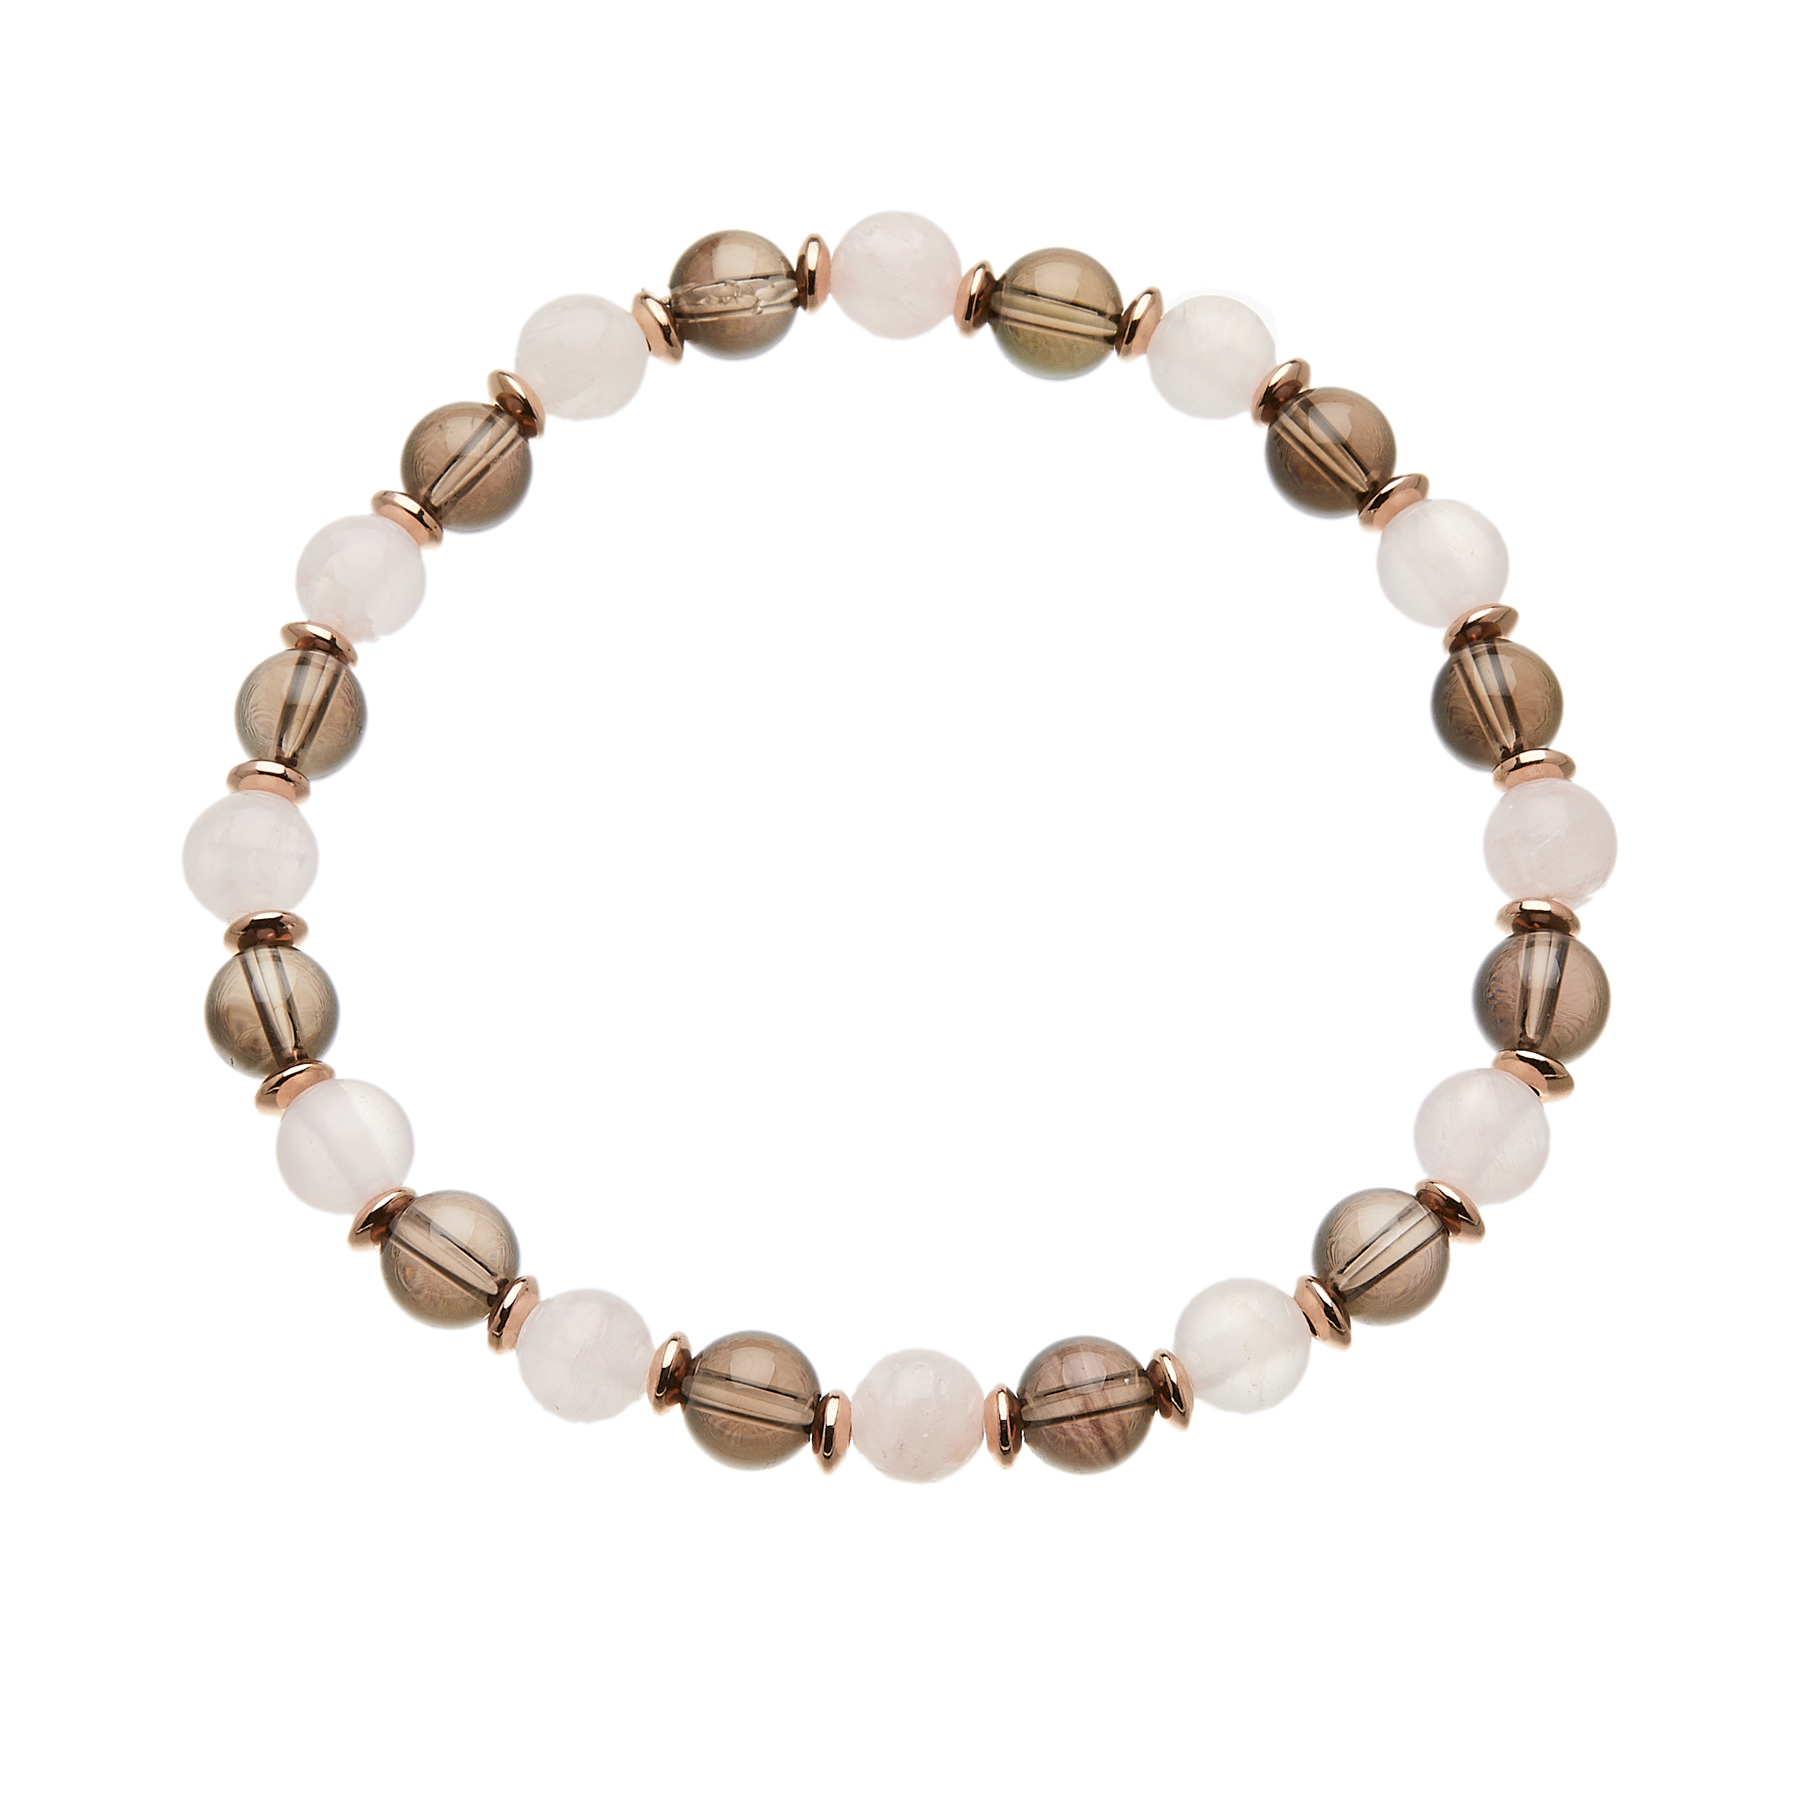 Pink jade and quartz beaded Bracelet with a rose gold spacers - Rae P20